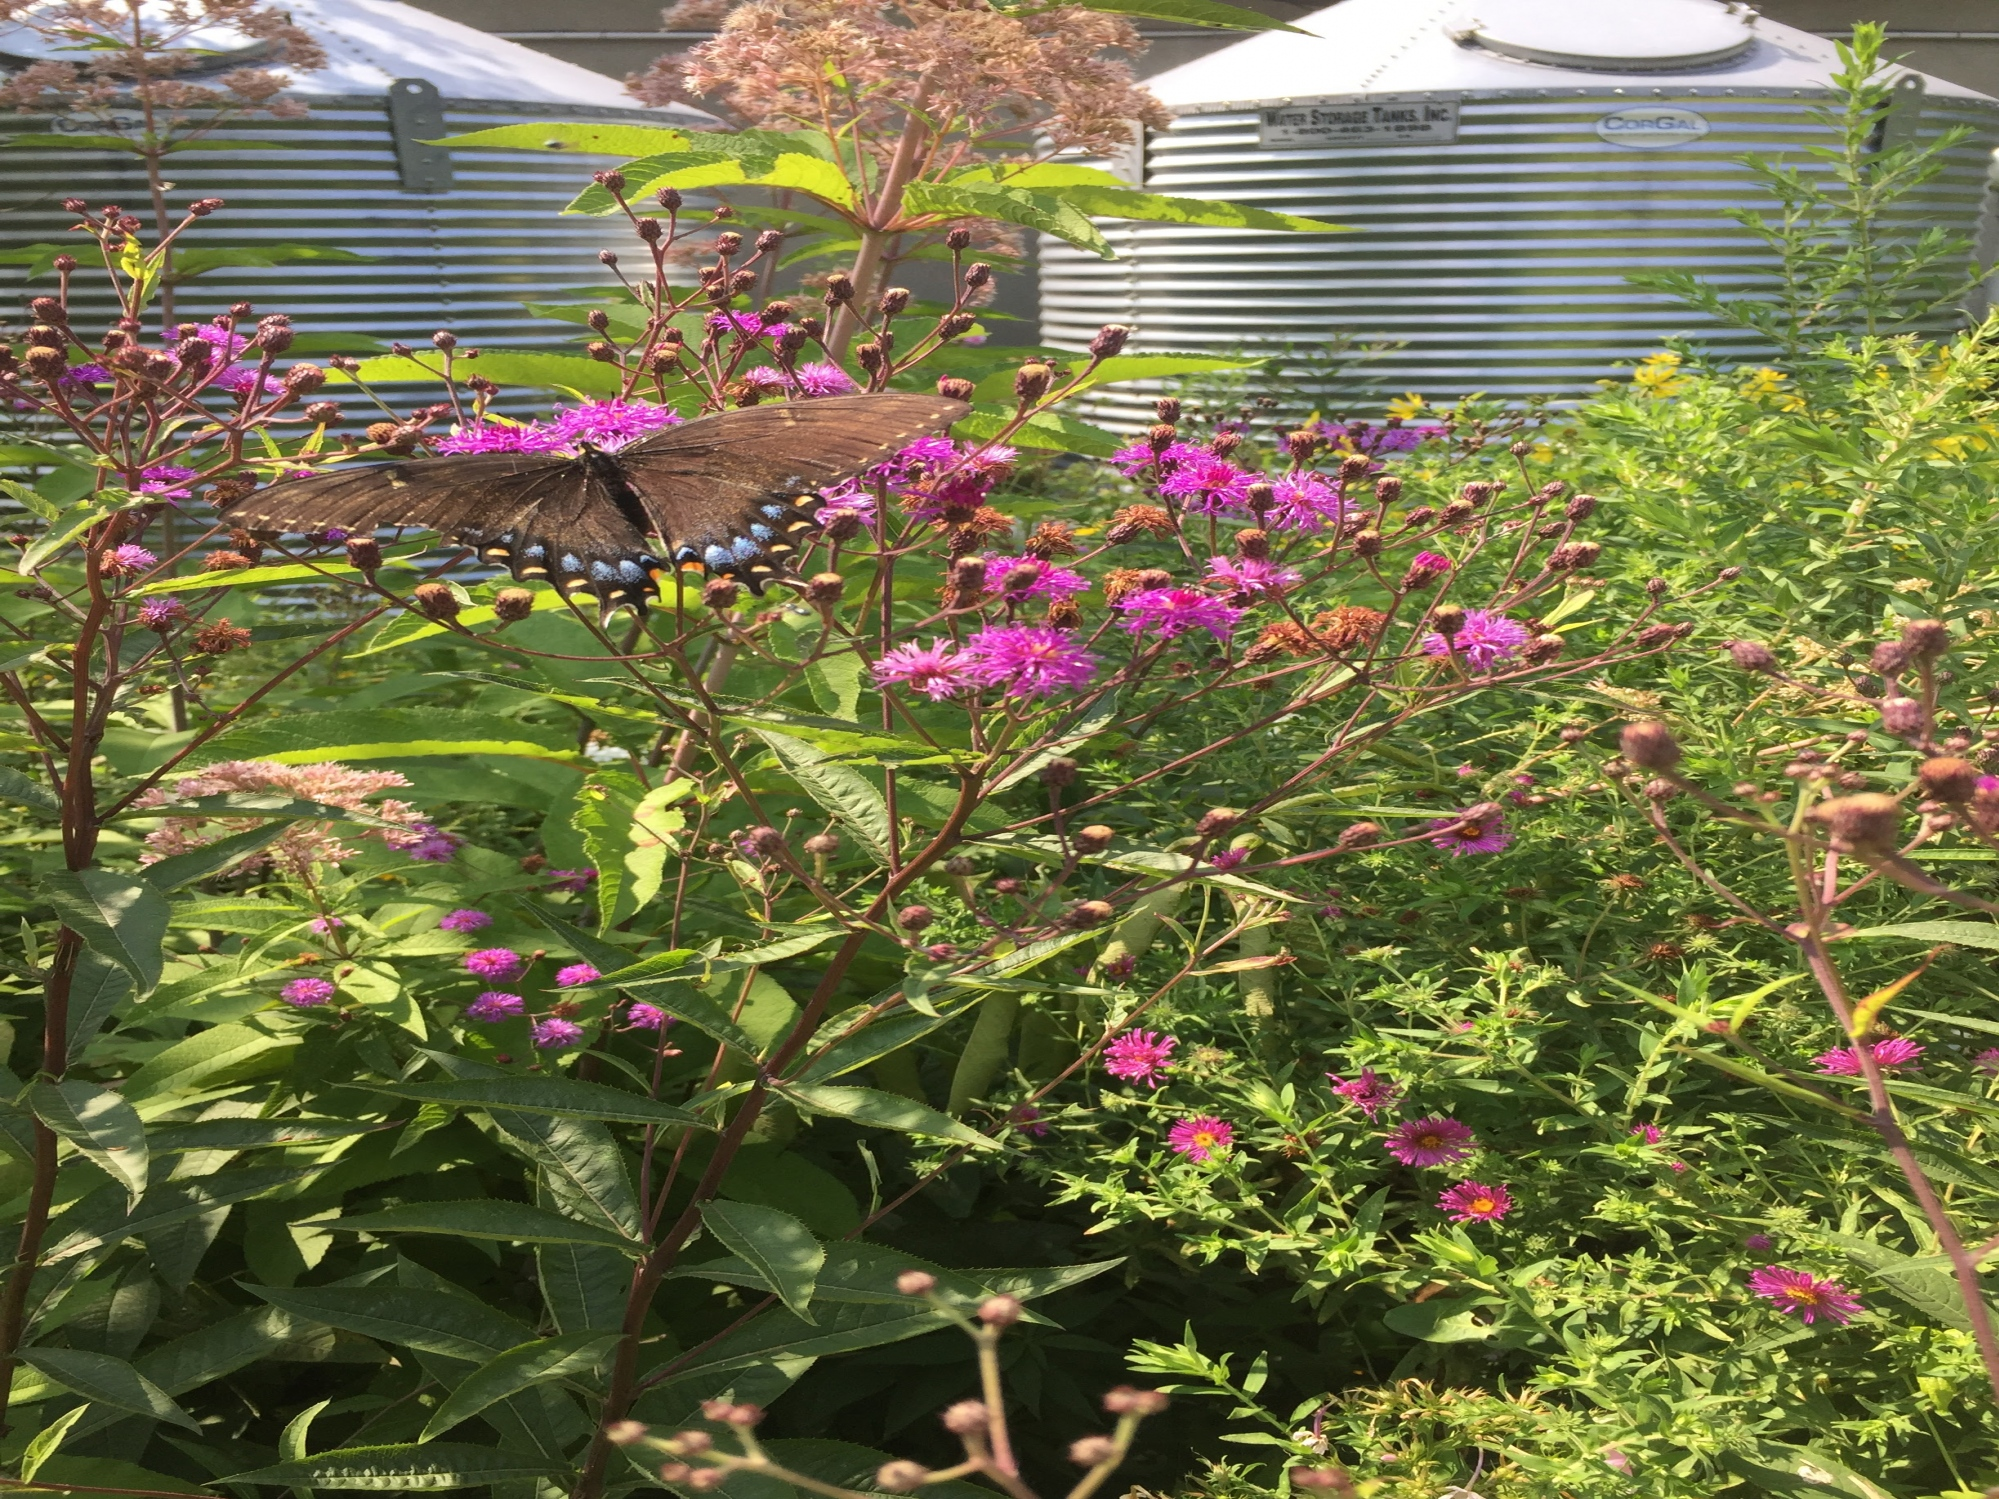 Eastern Tiger Swallowtail Butterfly on New York Ironweed